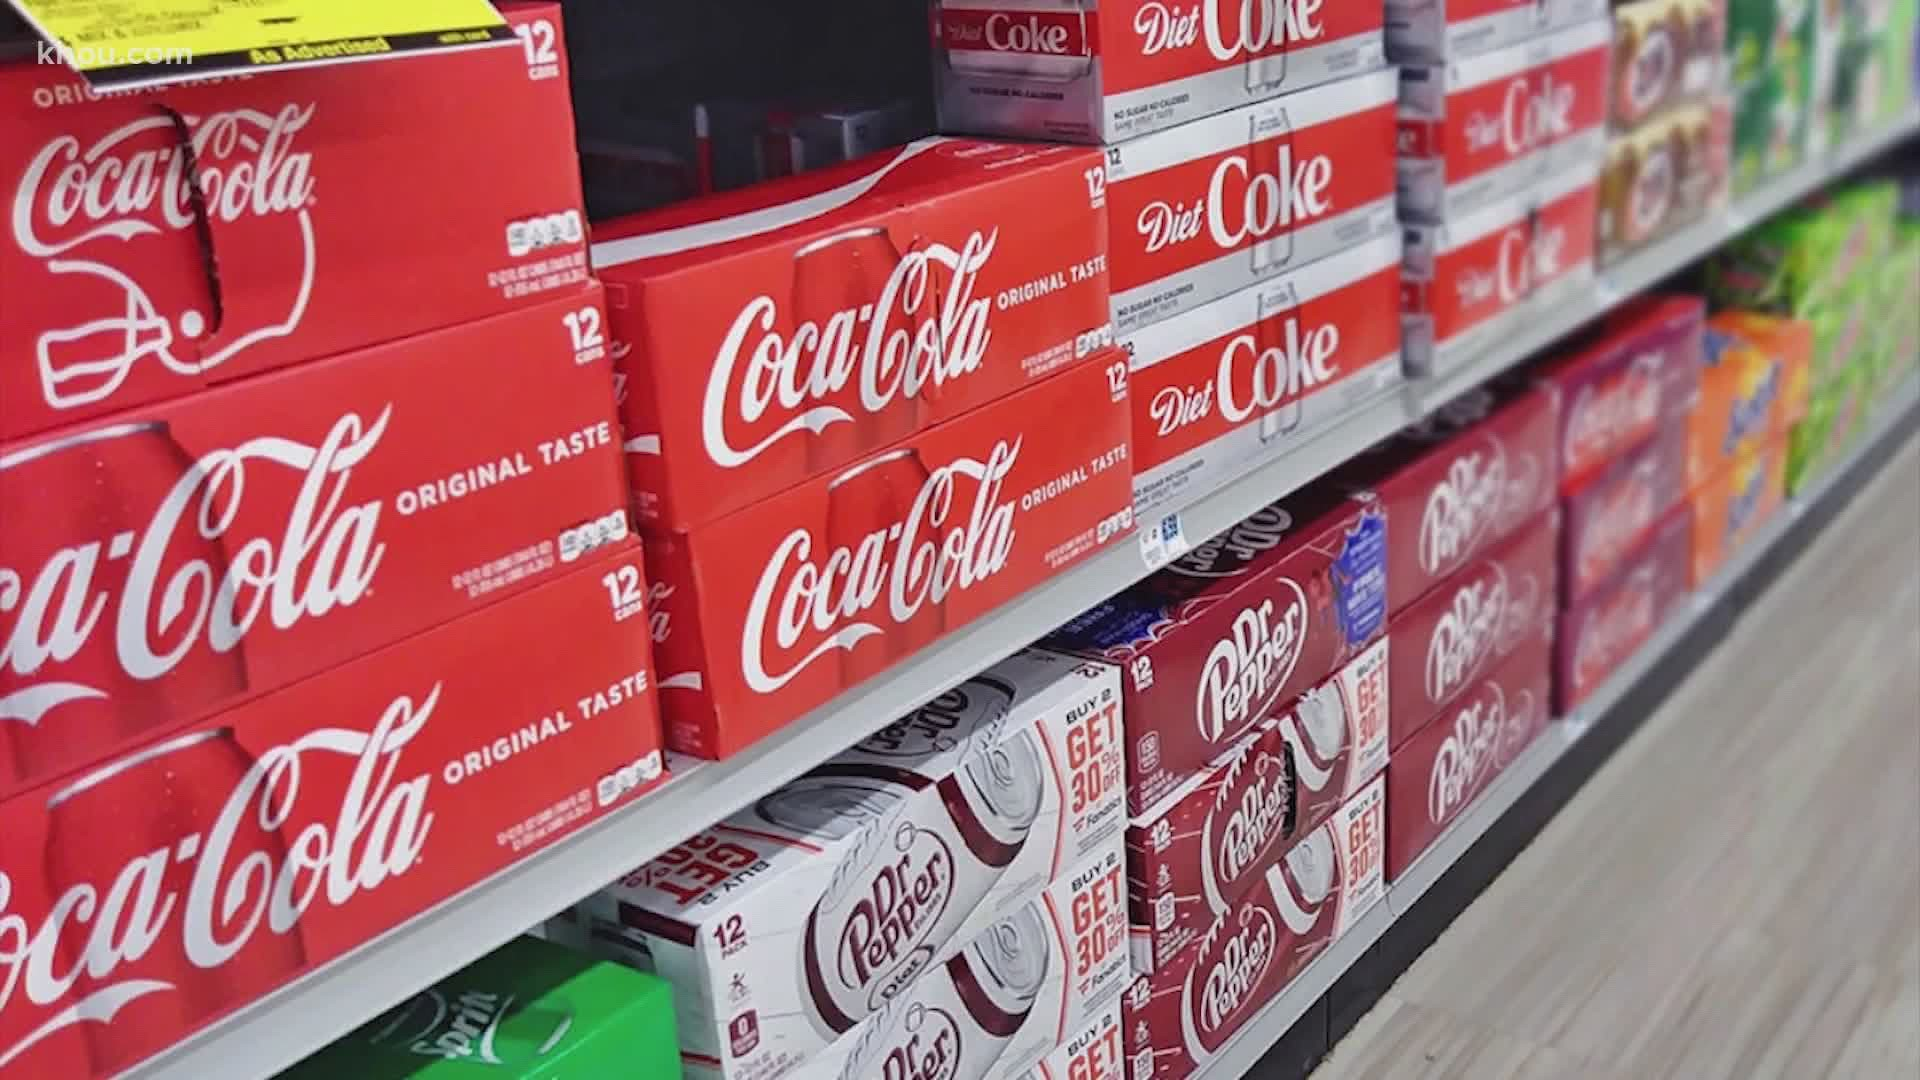 what stores currently have diet coke on sale?